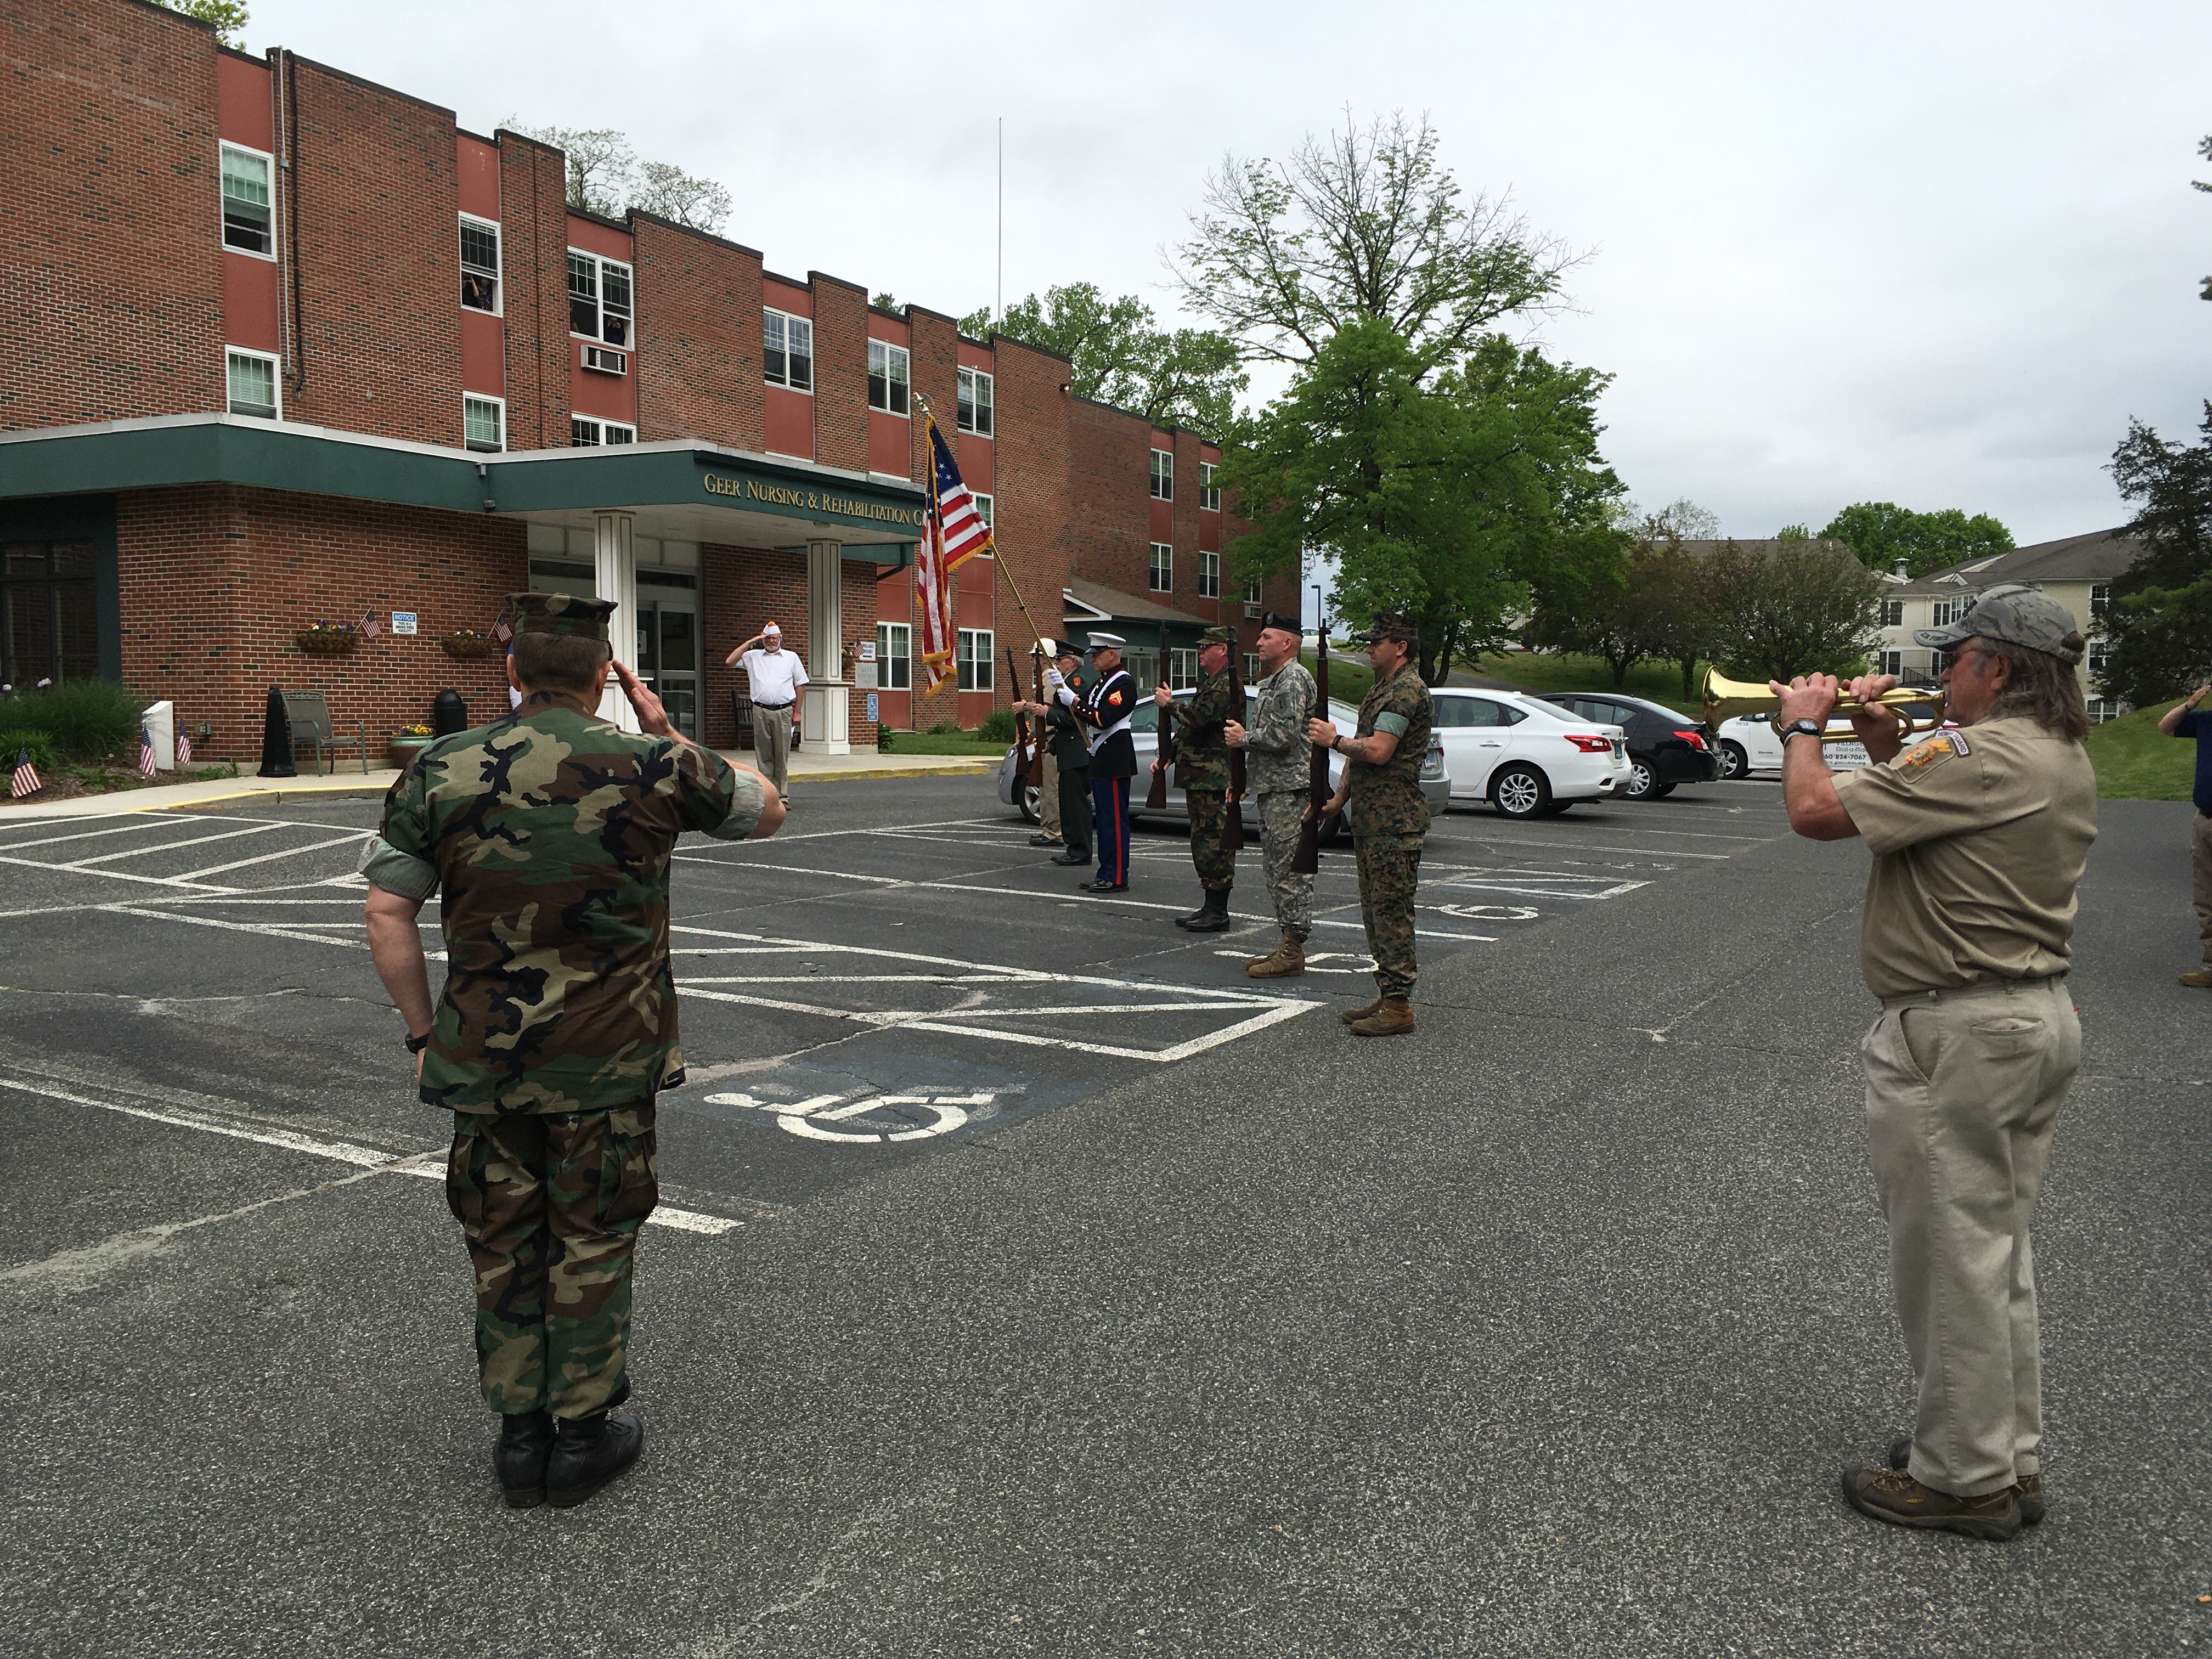 <strong>Taps was played outside Geer Nursing and Rehabilitation in North Canaan. <em>Photo by Cynthia Hochswender</em></strong>